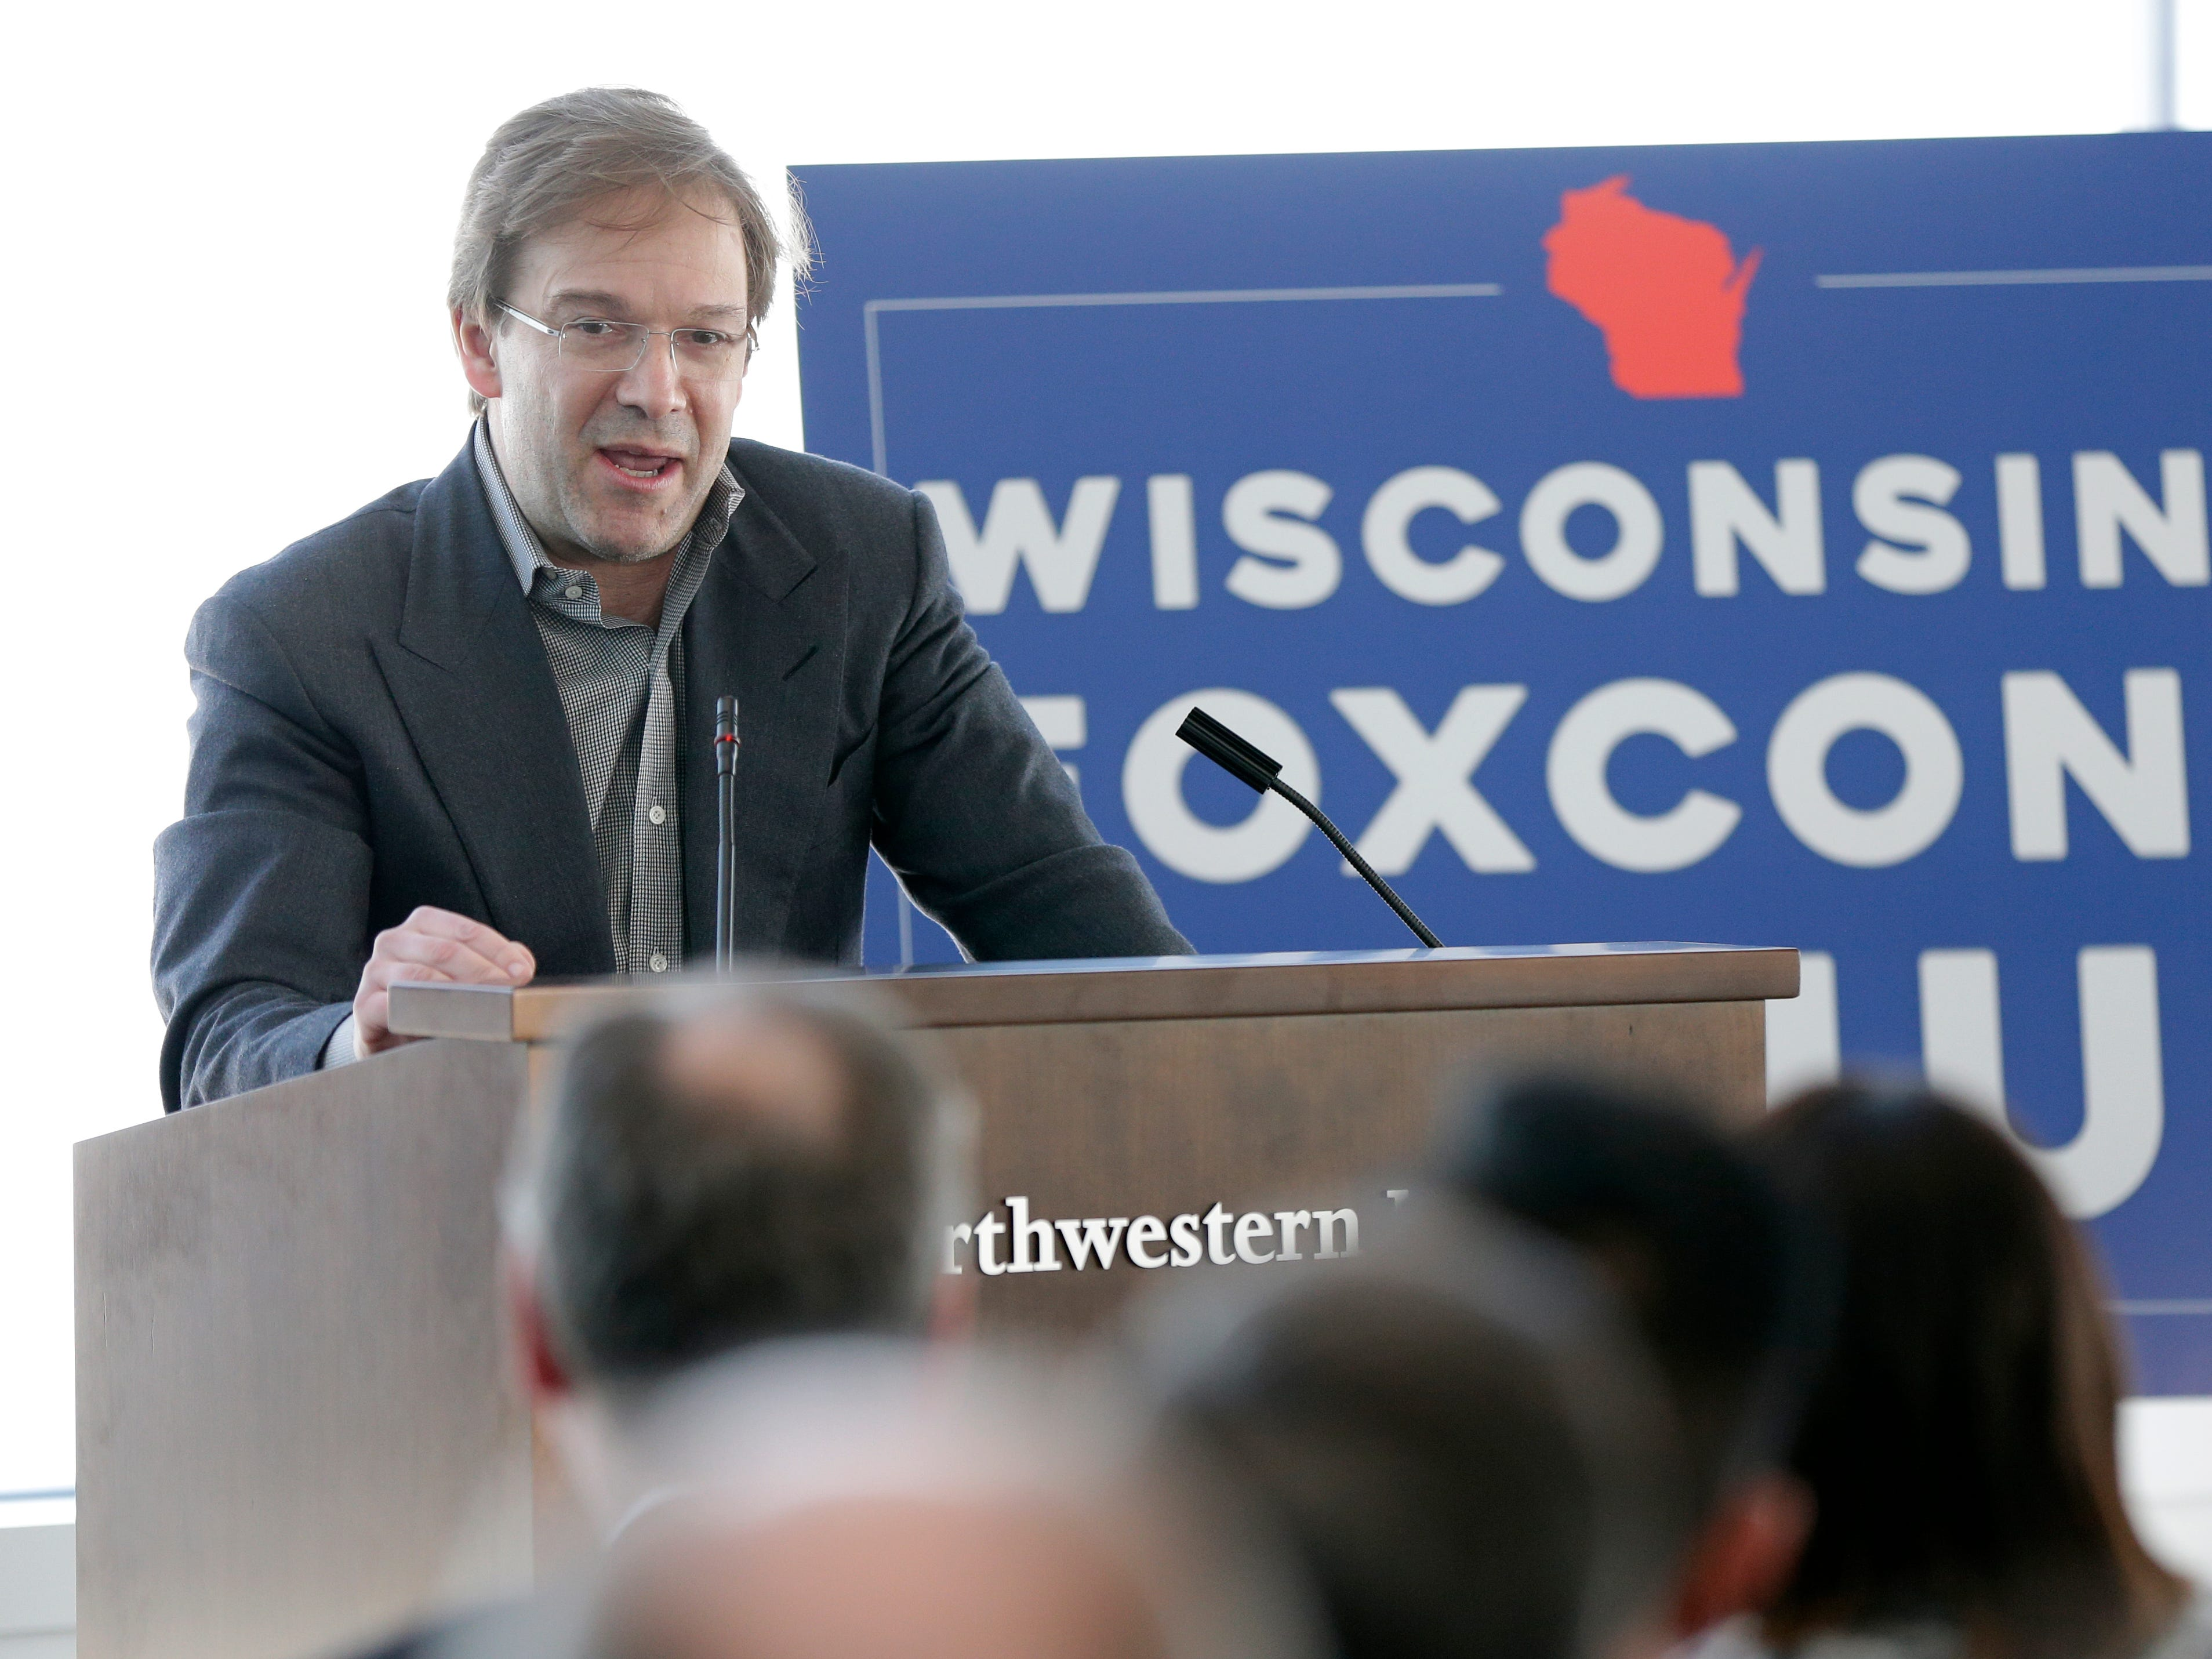 2018: Foxconn Technology Group held a press conference at the Northwestern Mutual Tower and Commons on E. Mason St. in Milwaukee to announce plans to buy the 132,800-square-foot building at 611 E. Wisconsin Ave. from Northwestern Mutual Life Insurance Co.The building will become Foxconn's North American headquarters. Milwaukee County ExecutiveChris Abele spoke about the partnership with Foxconn and the county.